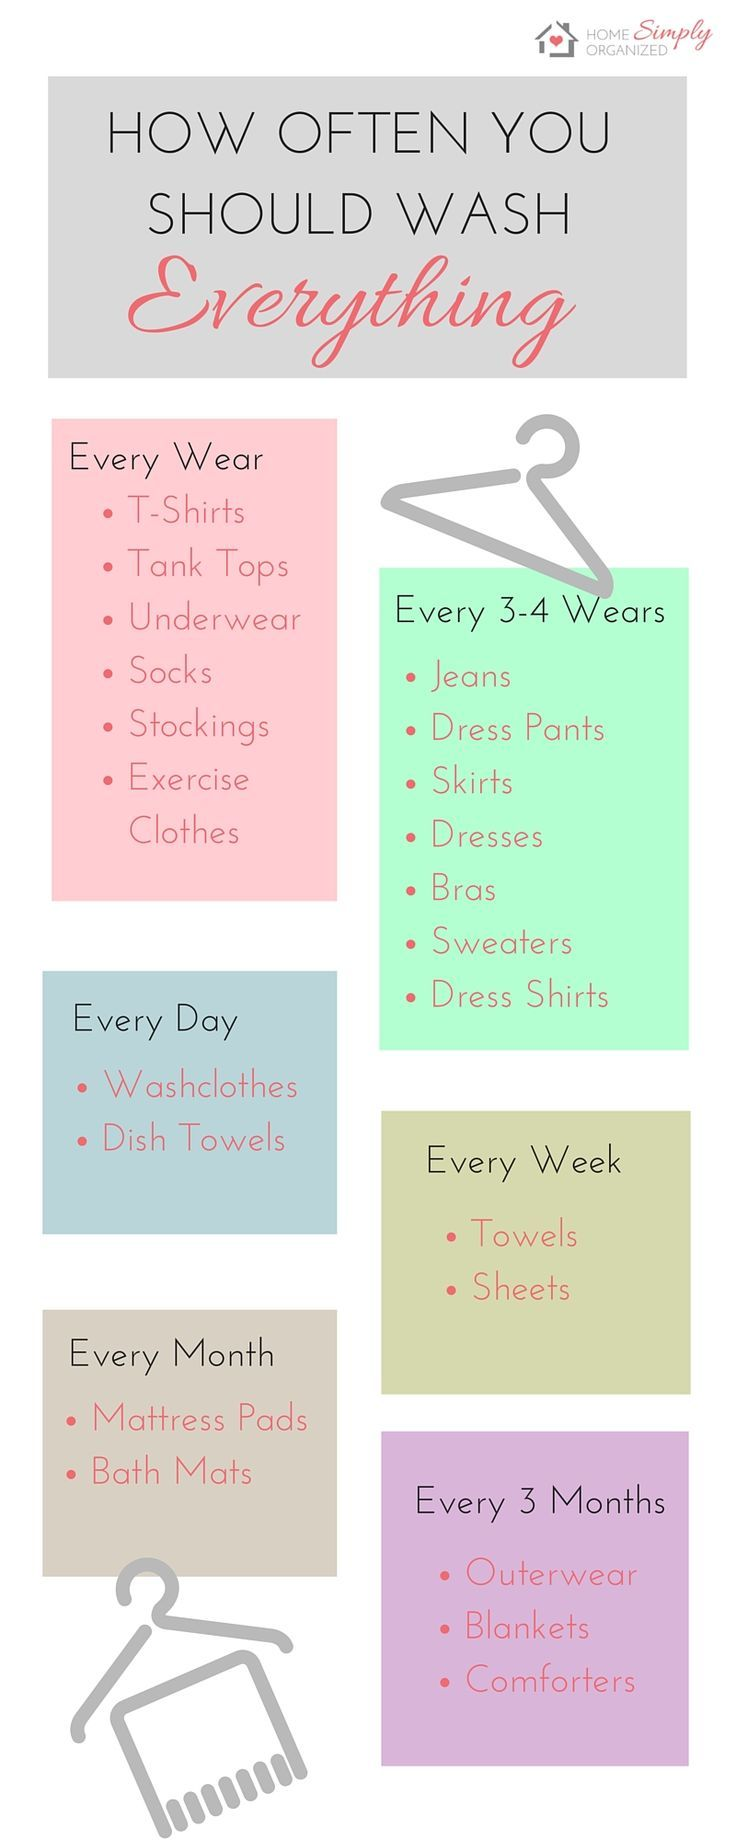 6 Ways To Make Laundry Less Dreadful Home Simply Organized House Cleaning Tips Washing Clothes Cleaning Hacks